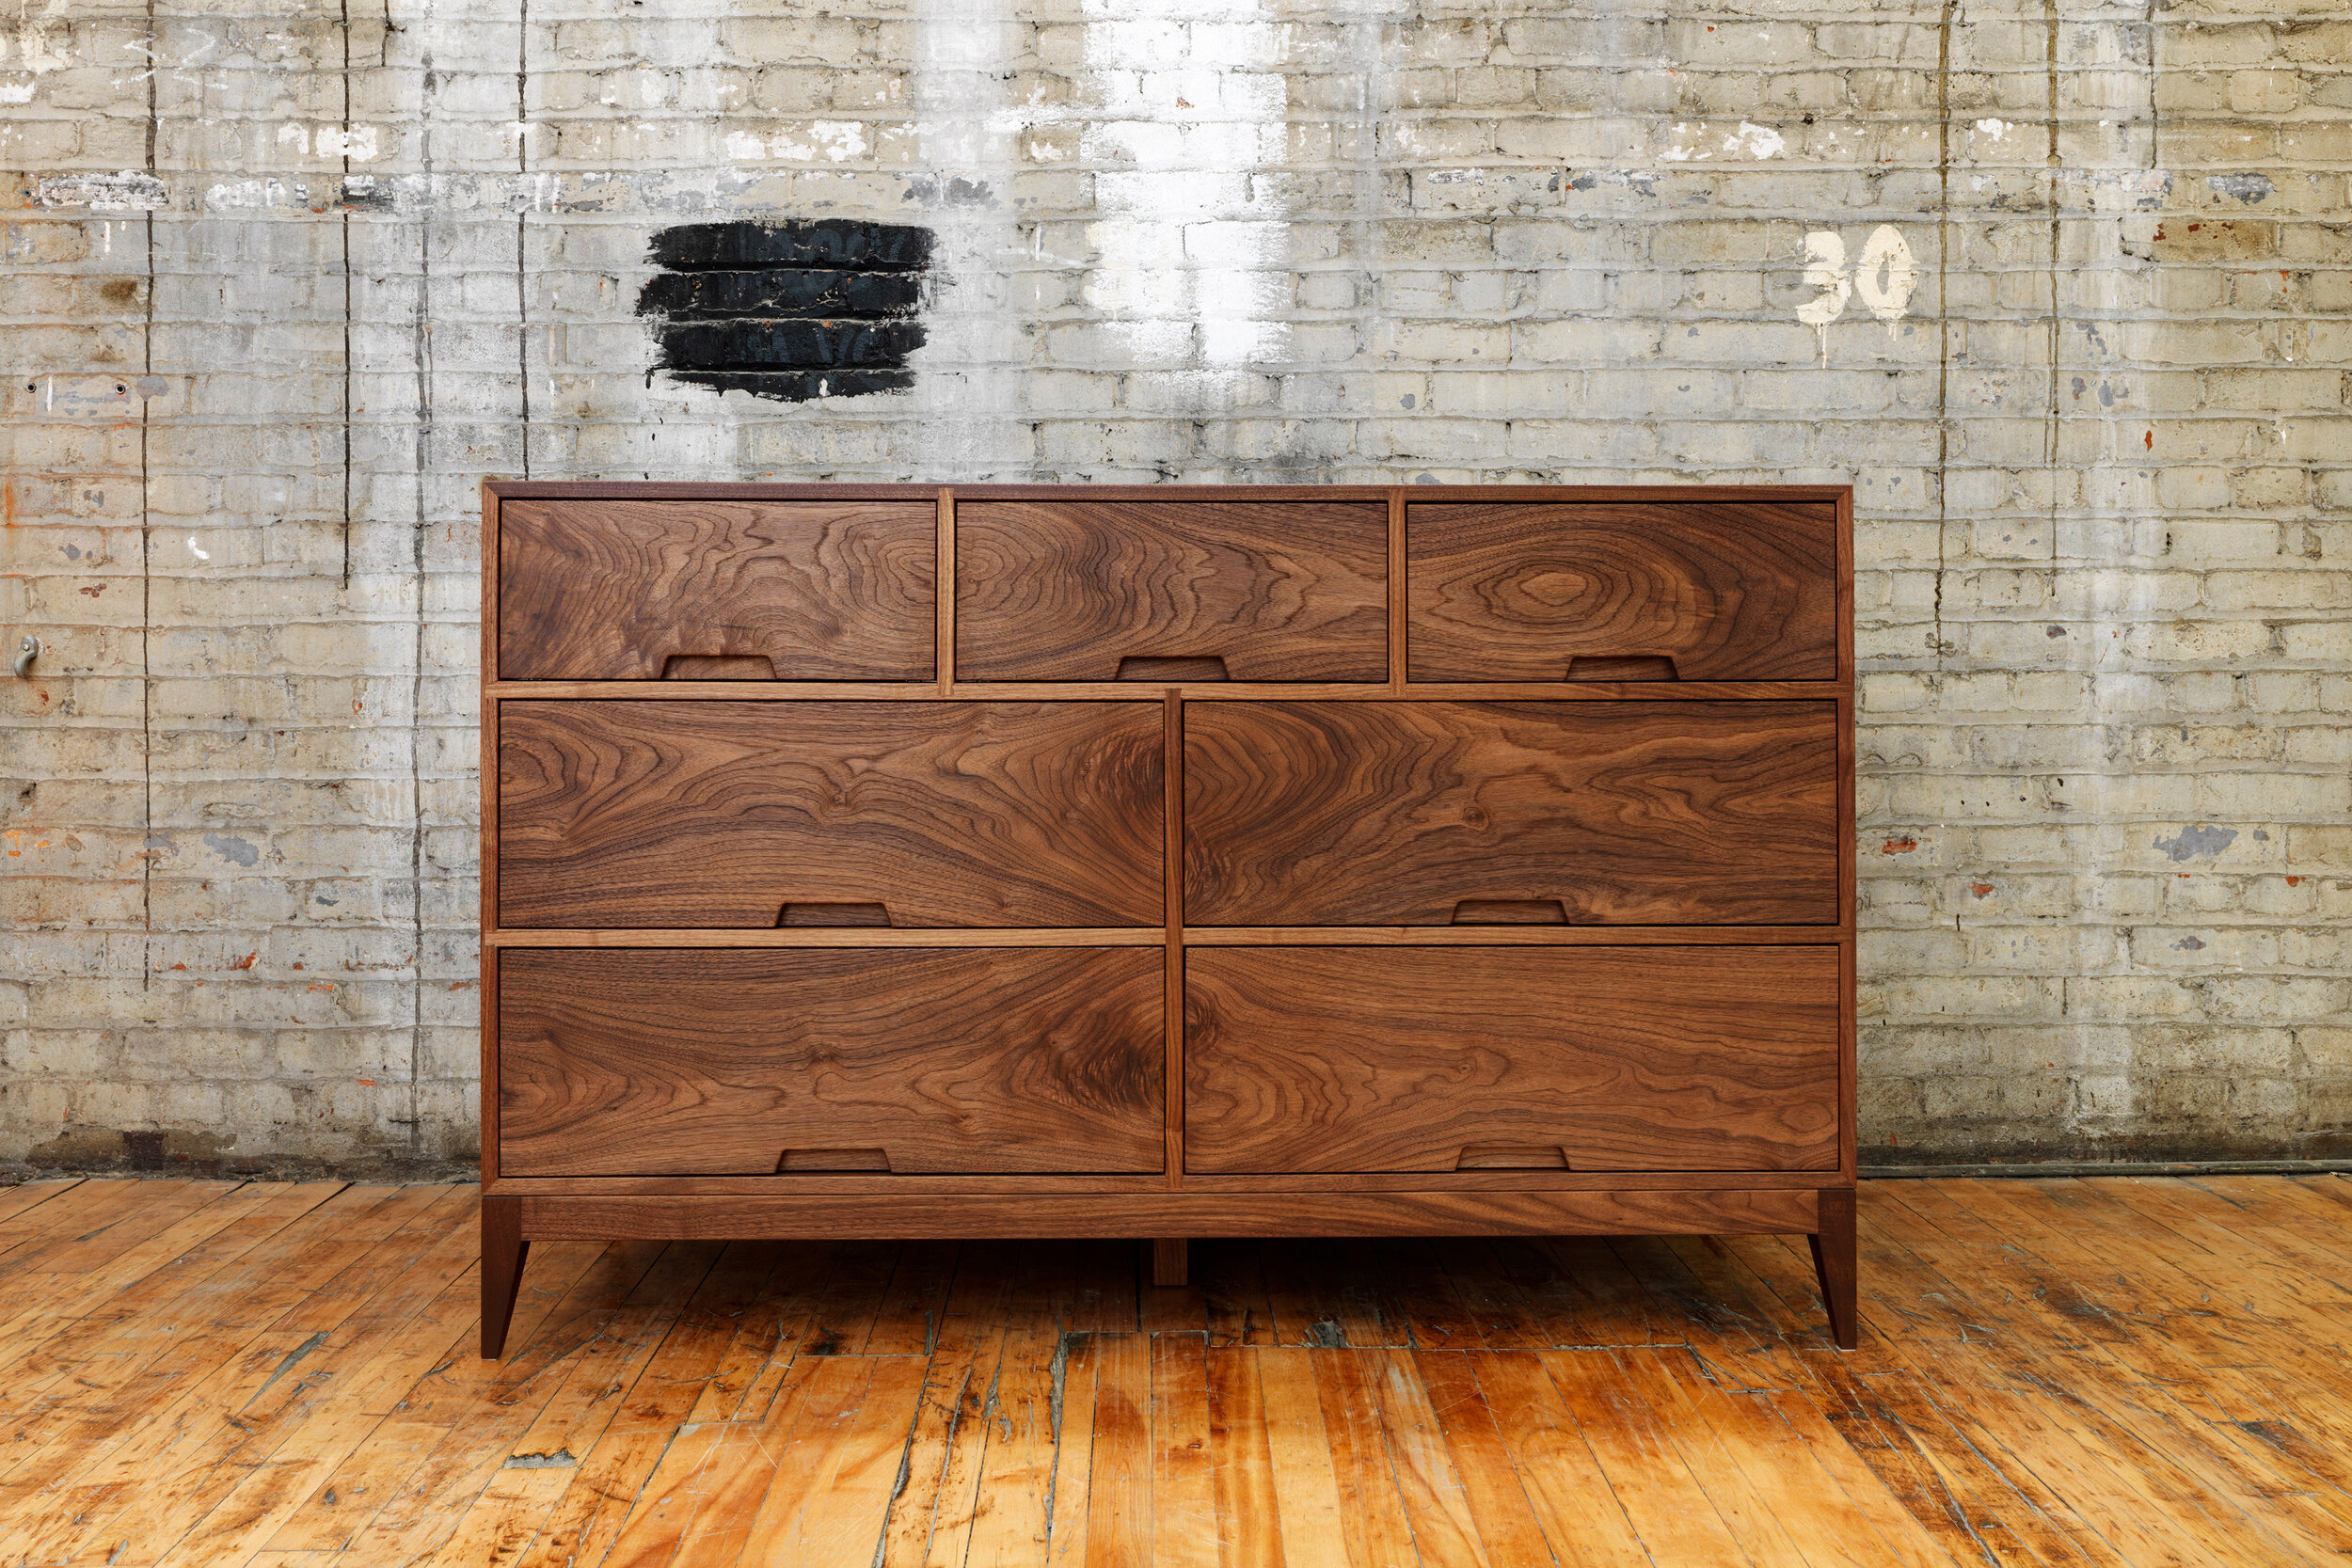 07 - Chest of Drawers.jpg